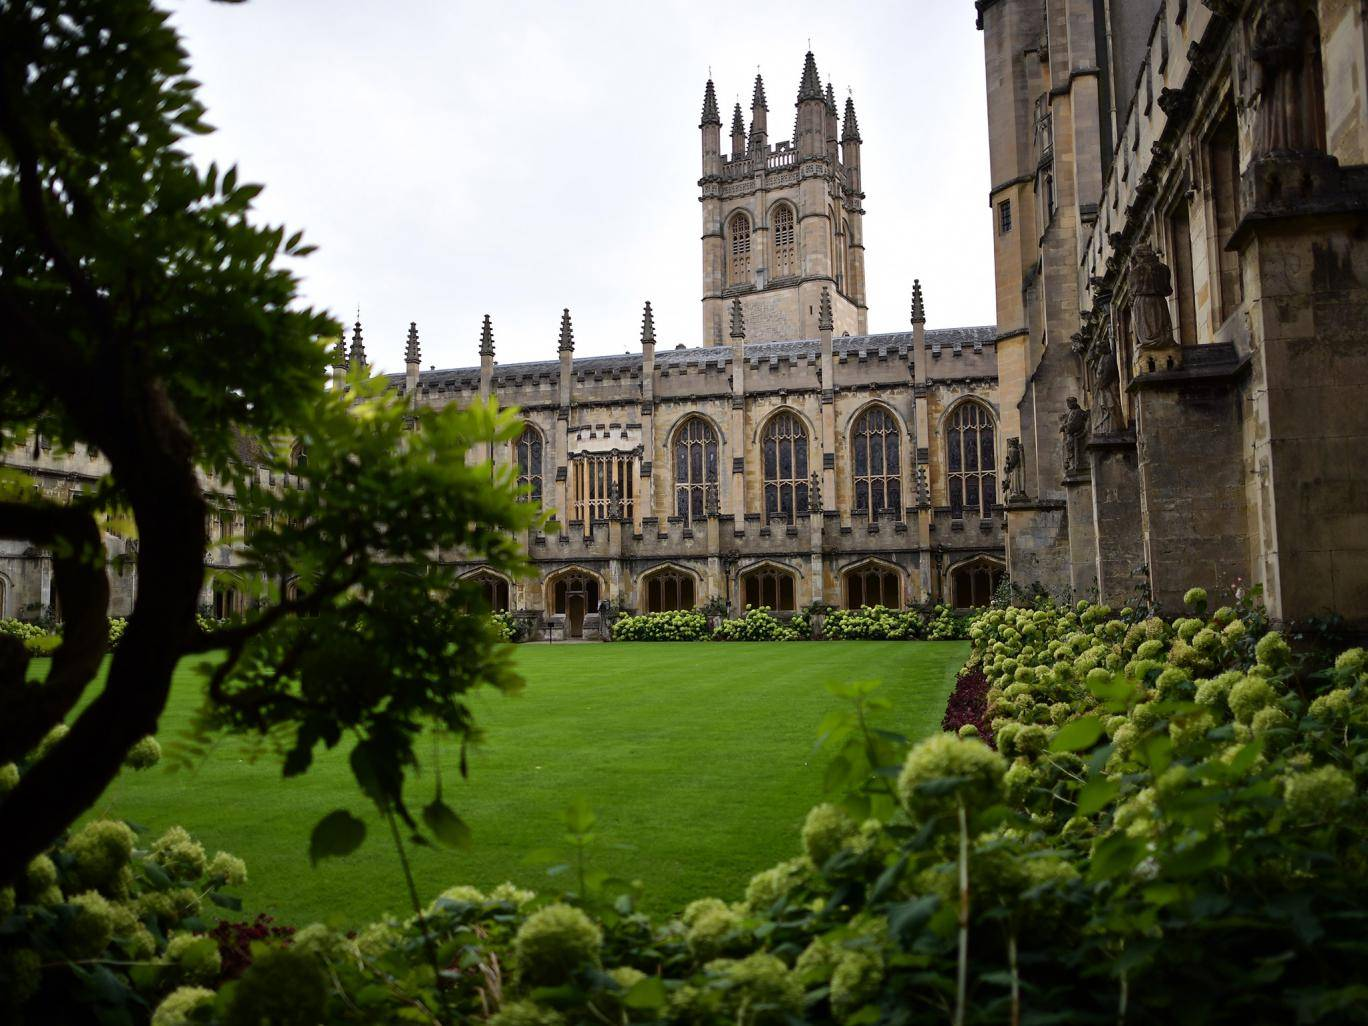 Oxford University admits more women than men for first time in history